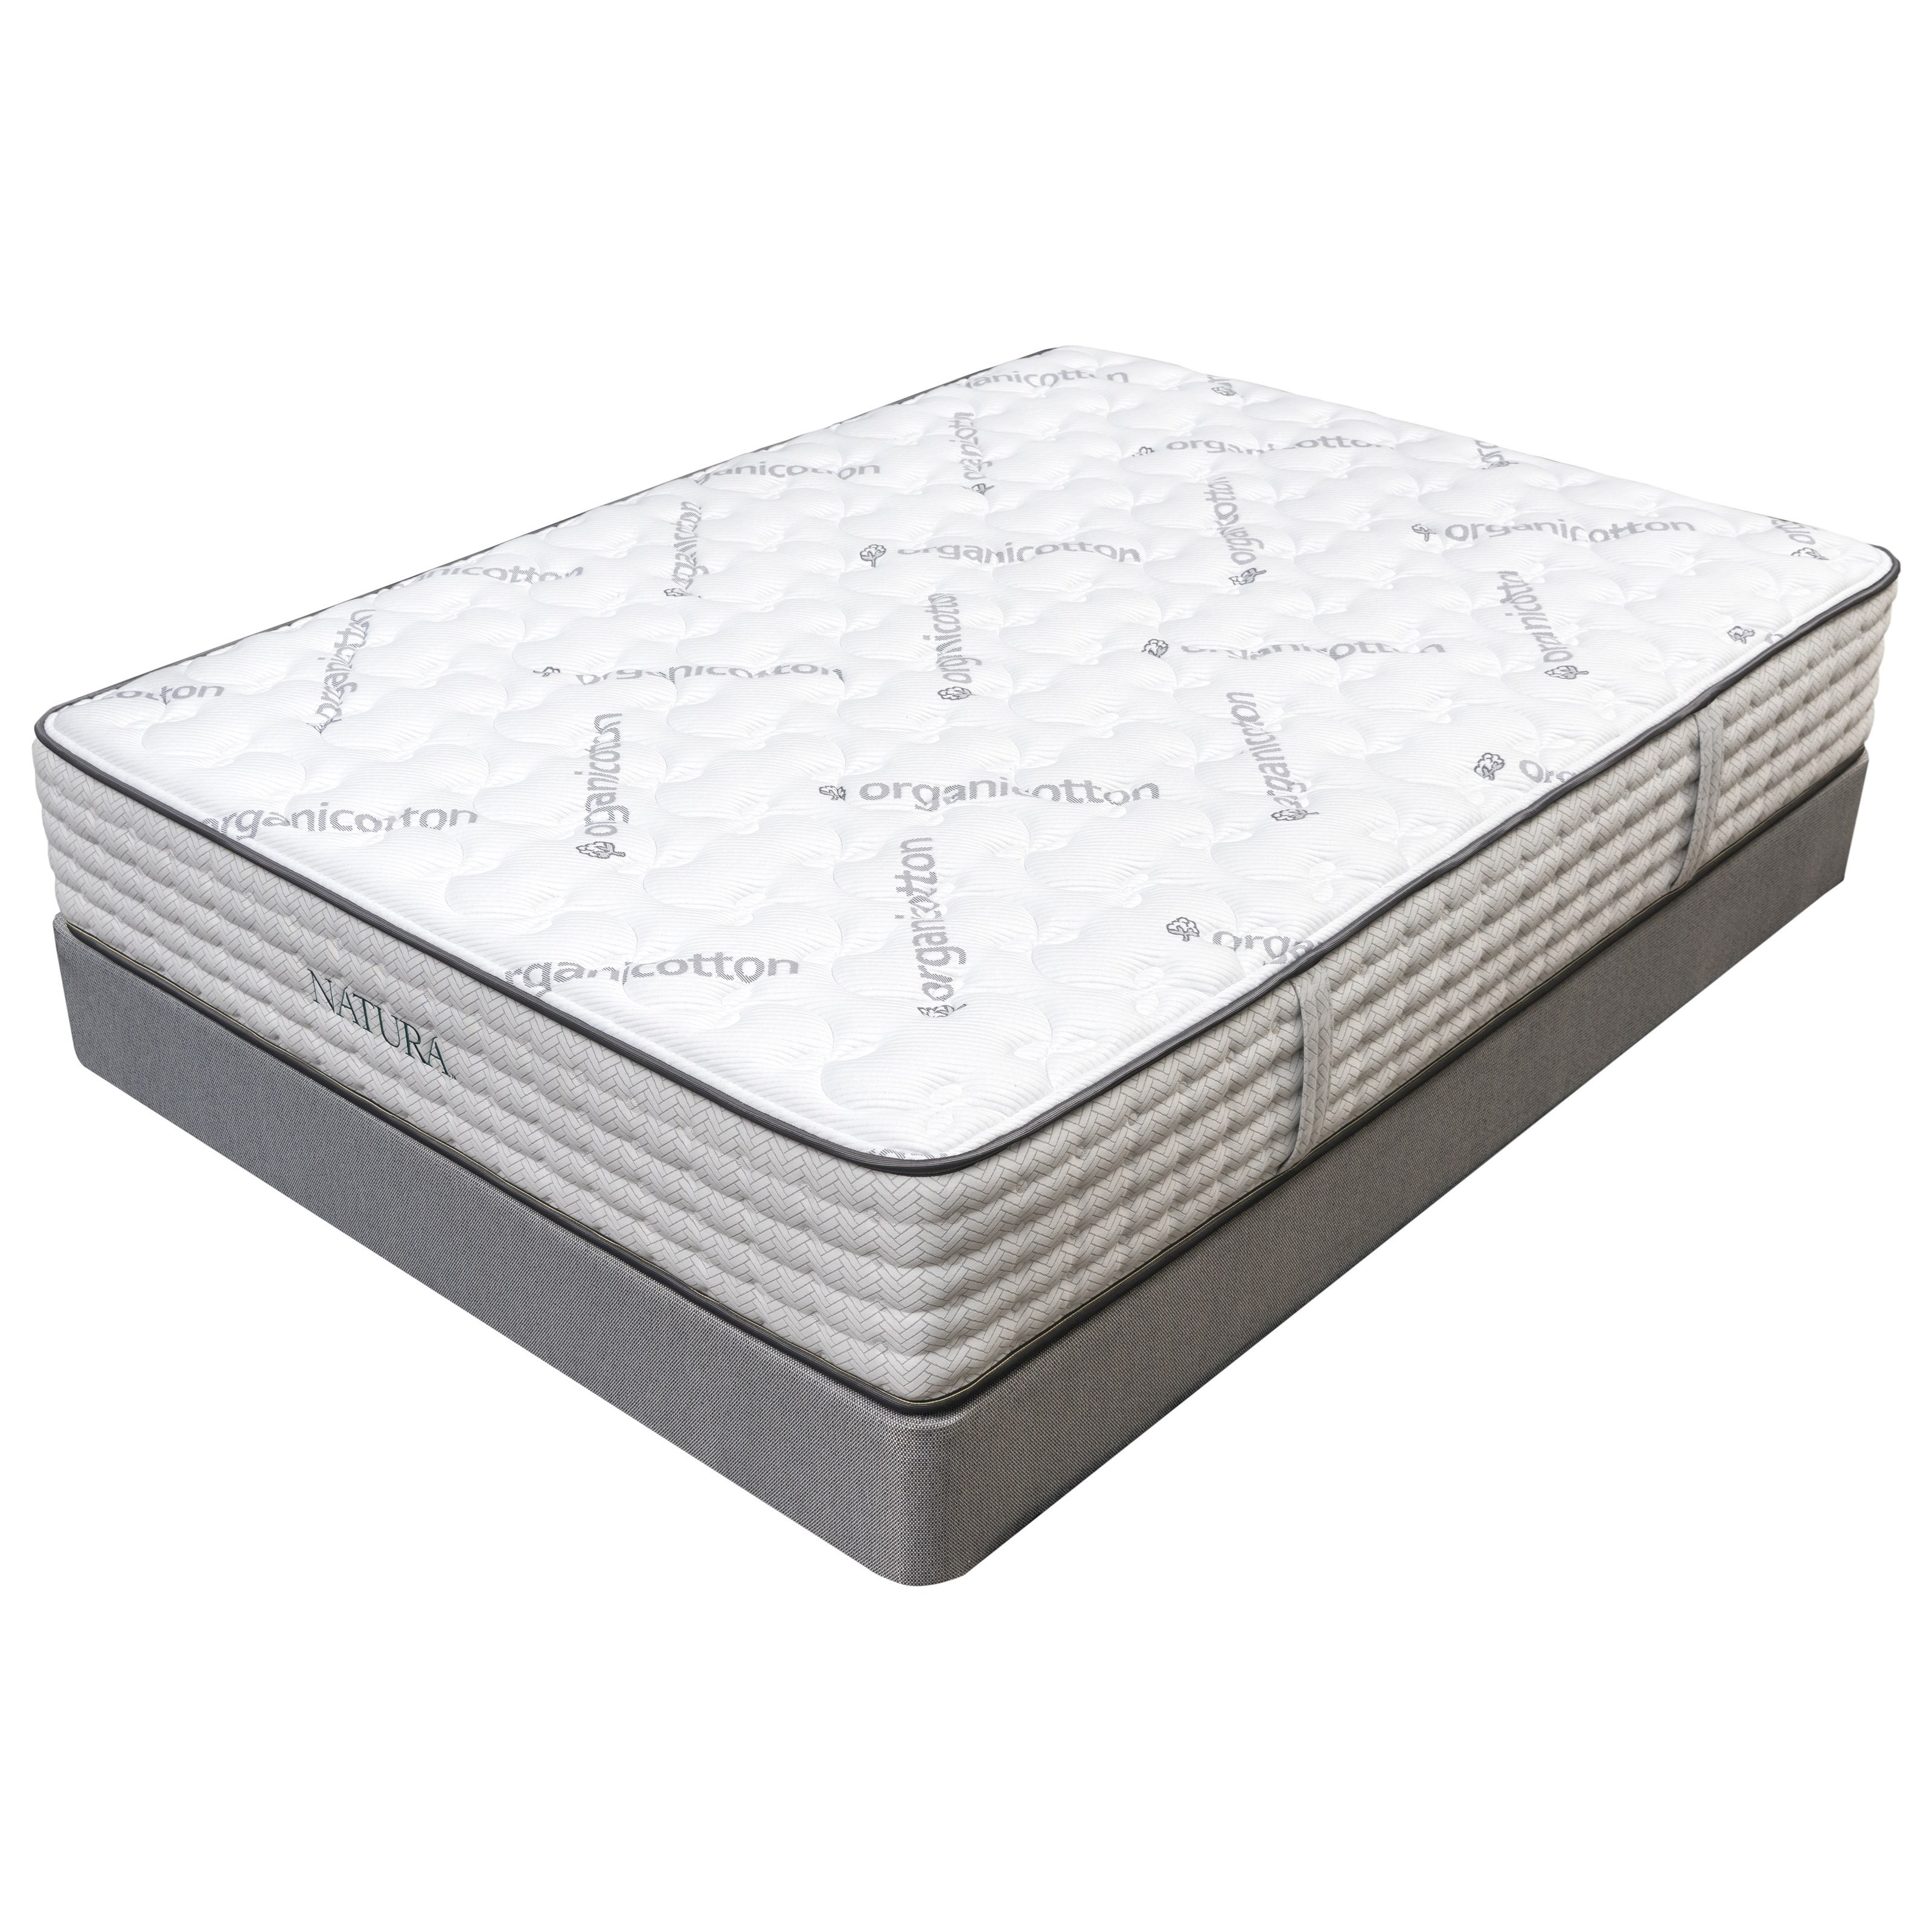 "Acacia Firm Twin 12"" Firm Mattress LP Set  by Natura World at Pilgrim Furniture City"